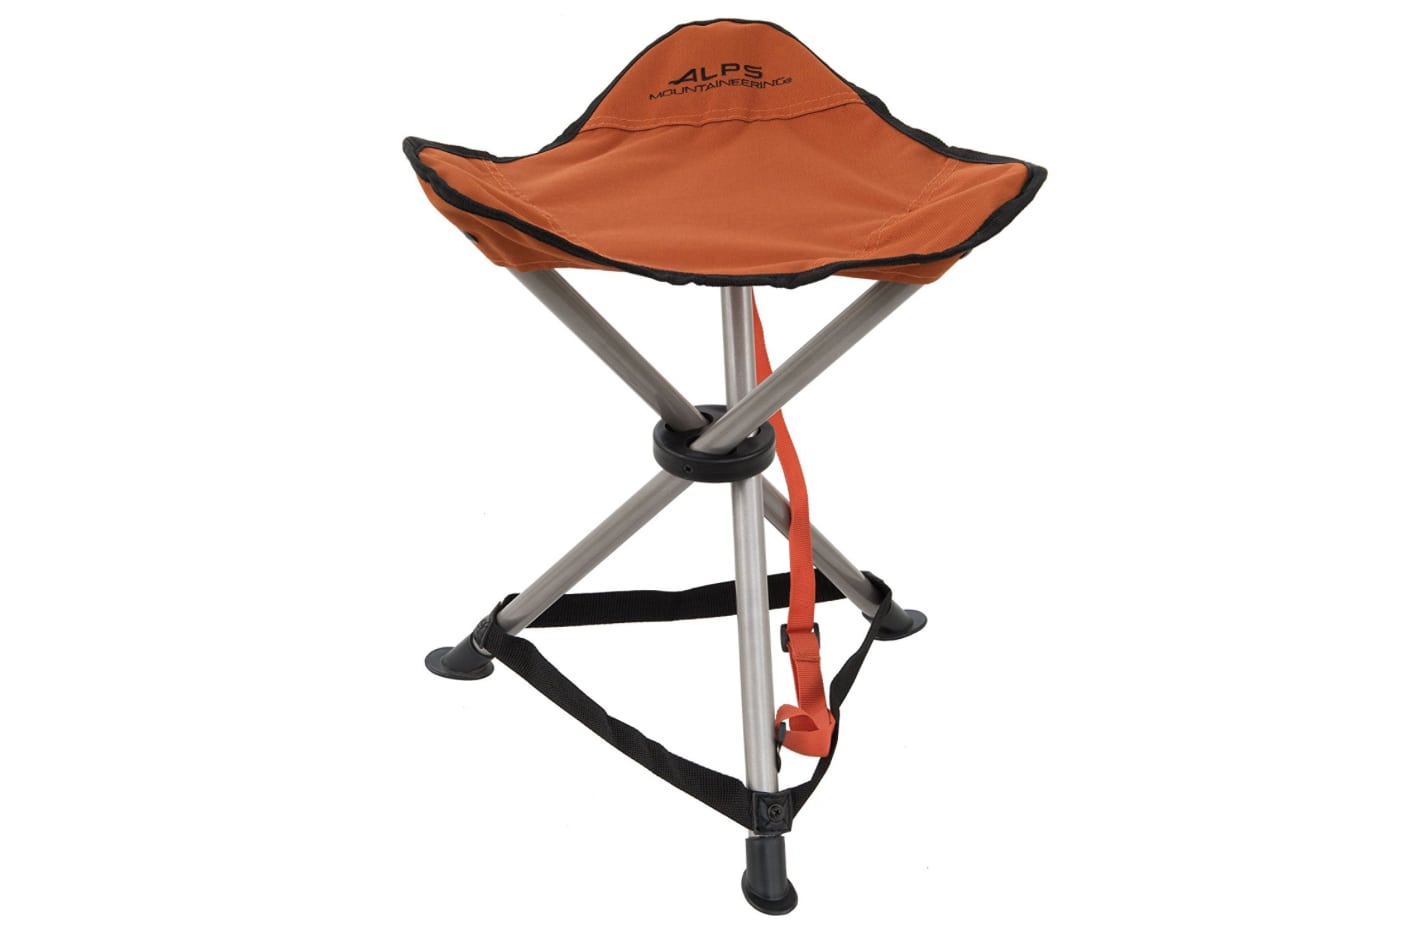 fishing chair best price antique black rocking top 5 tripod stools for hunting camping more tp alps mountaineering tri leg stool